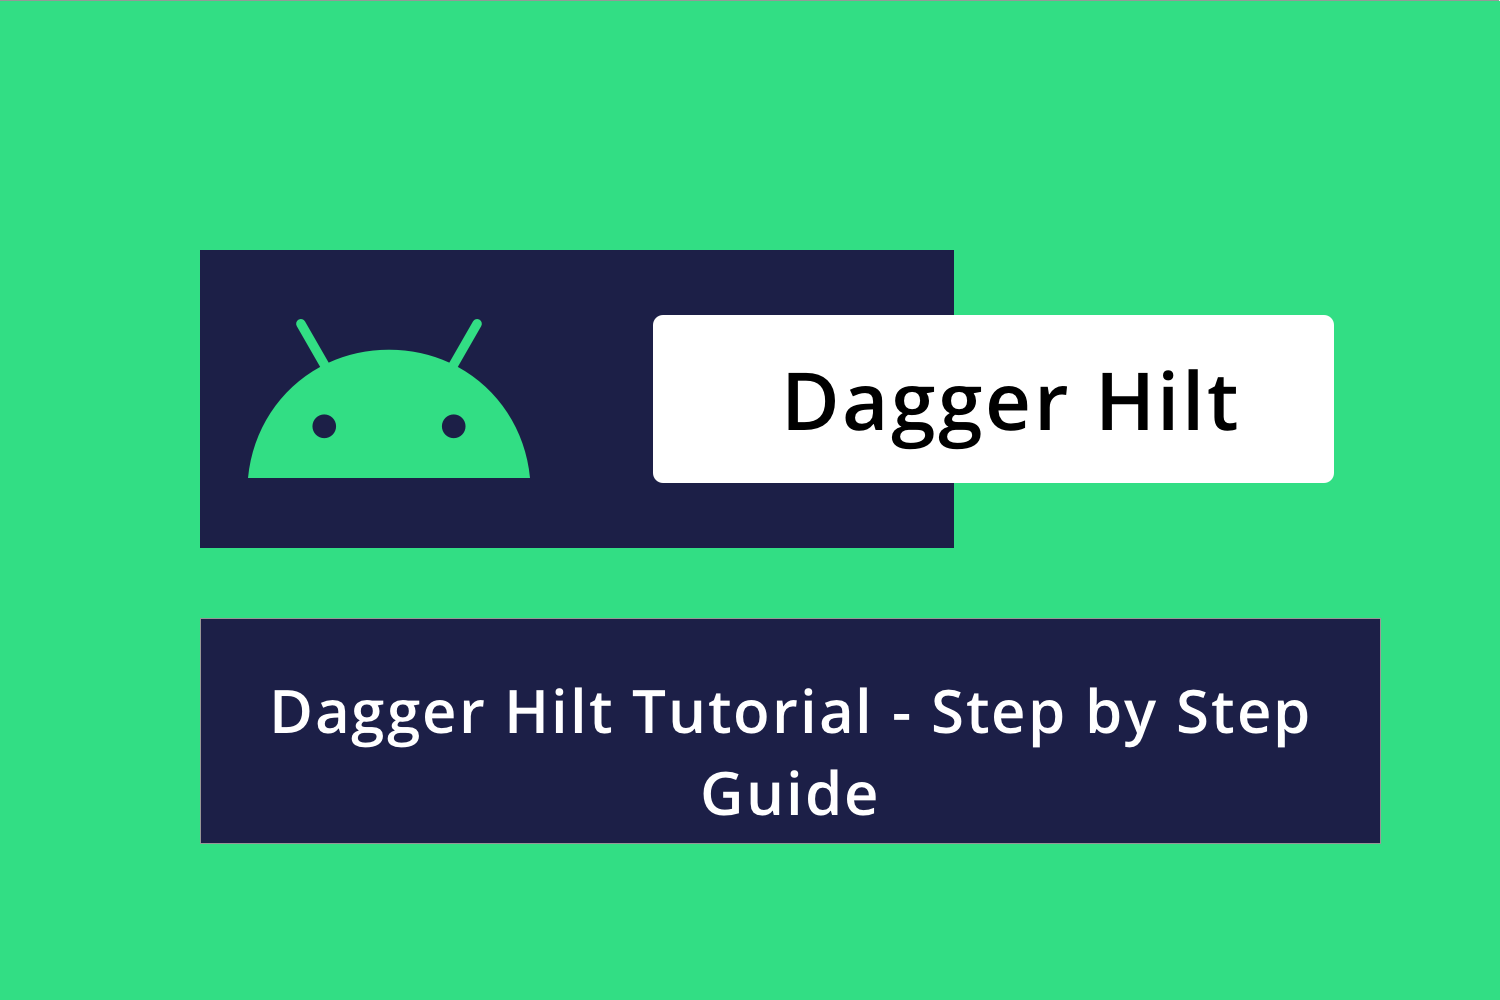 Dagger Hilt Tutorial - Step by Step Guide